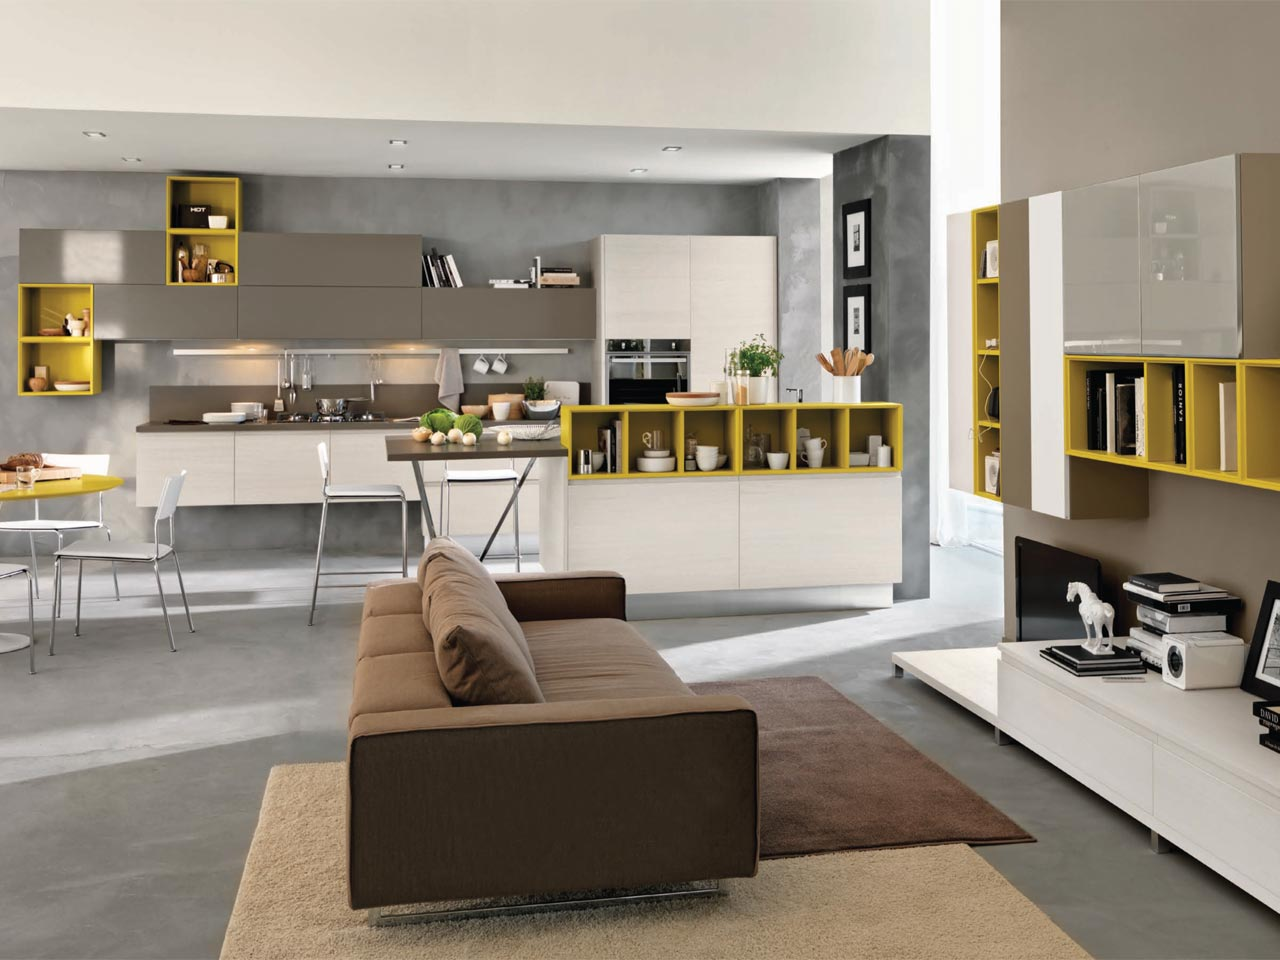 Best Cucine Rovere Grigio Ideas - harrop.us - harrop.us